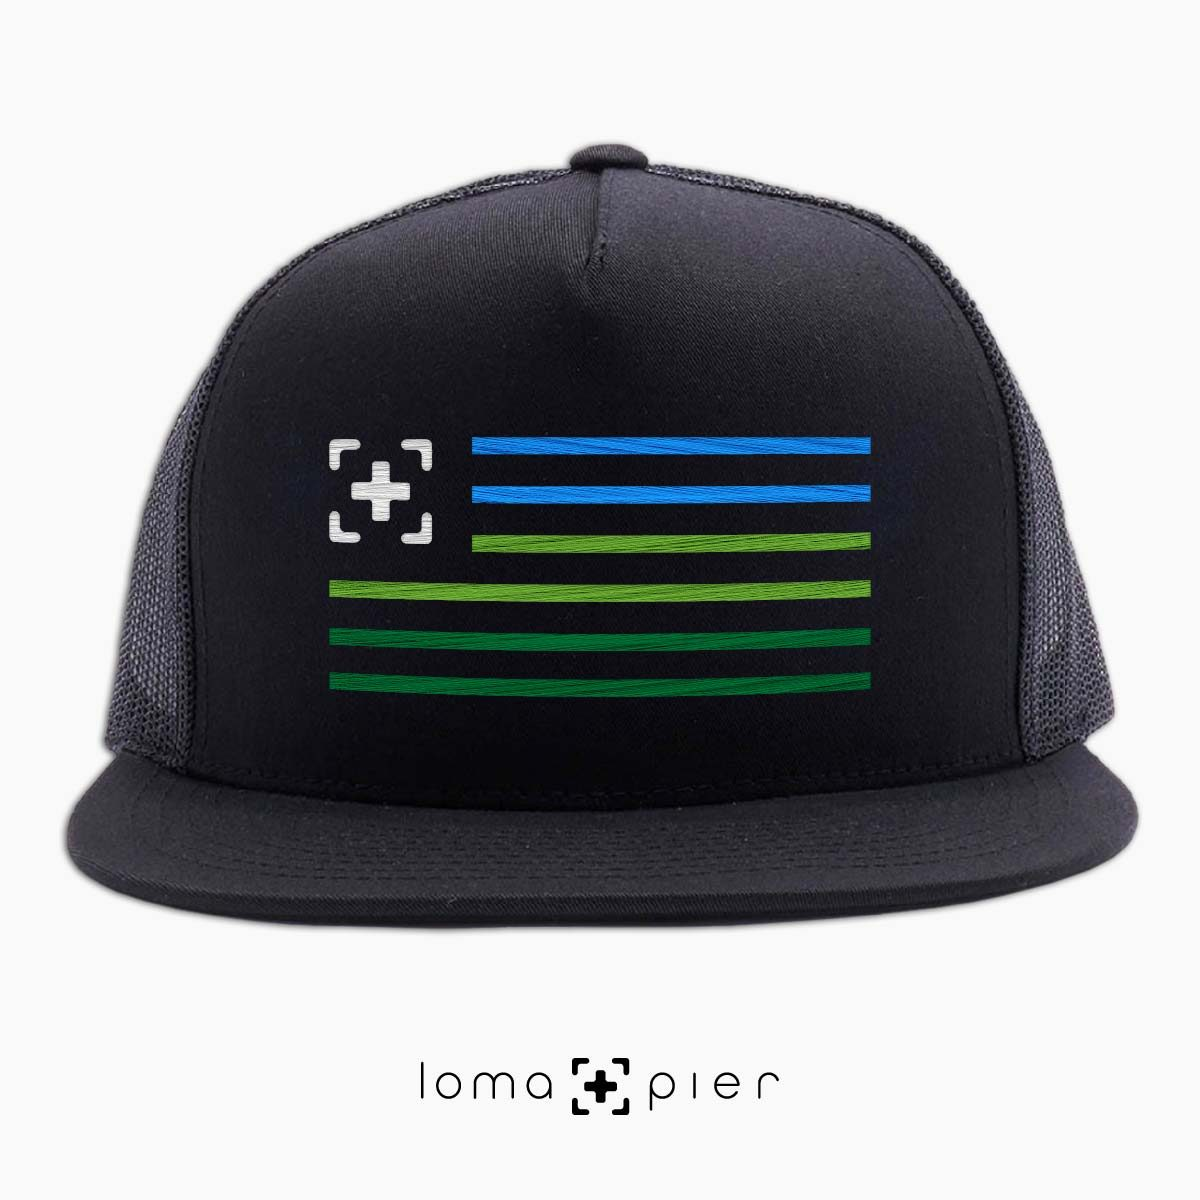 loma+stripes beach netback hat in black by loma+pier hat store